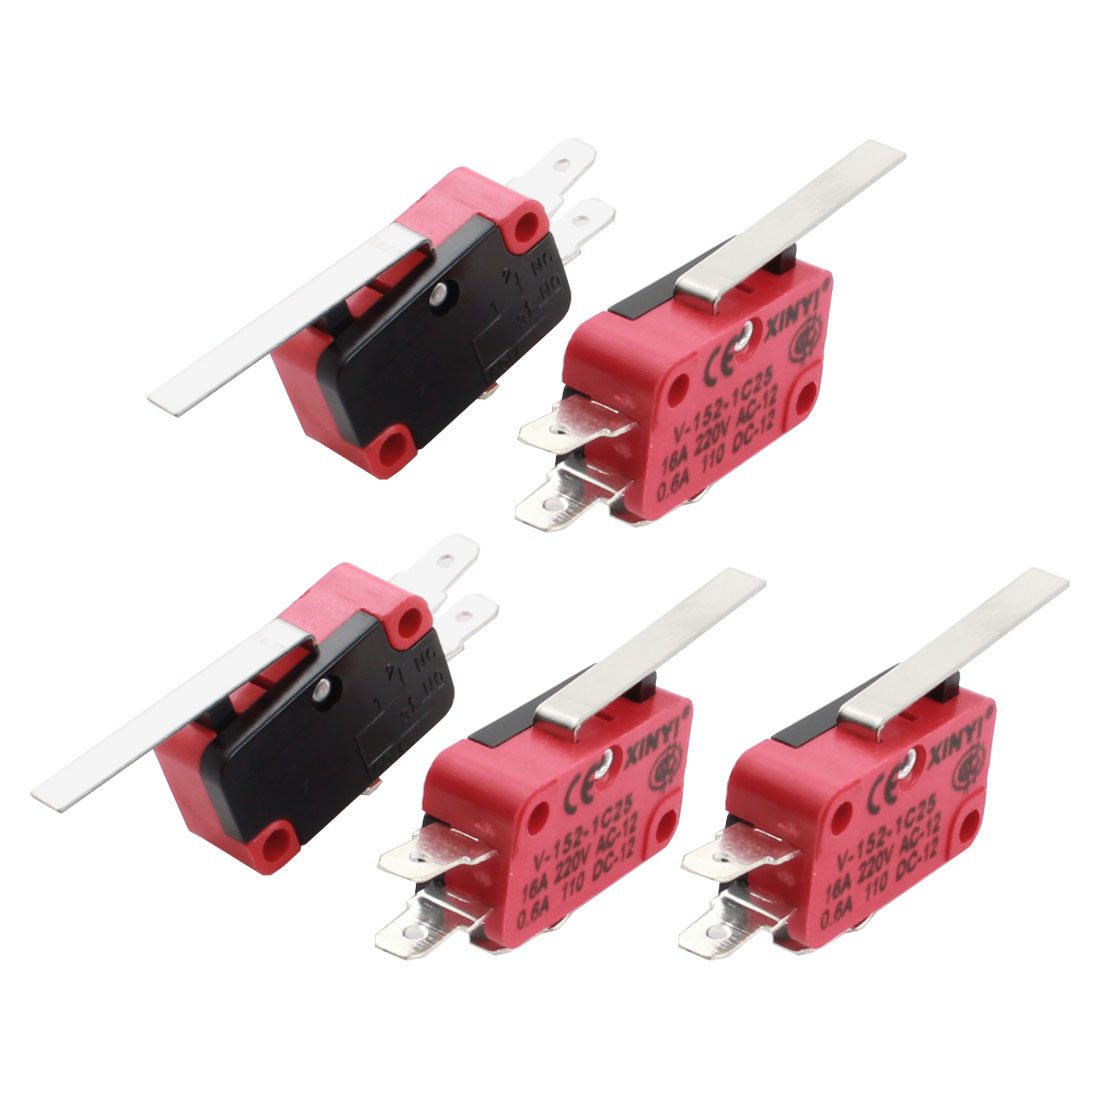 5Pcs AC220V 16A SPDT 3Pin 1NO 1NC Momentary Long Straight Hinge Lever Black Red Plastic Micro Switch